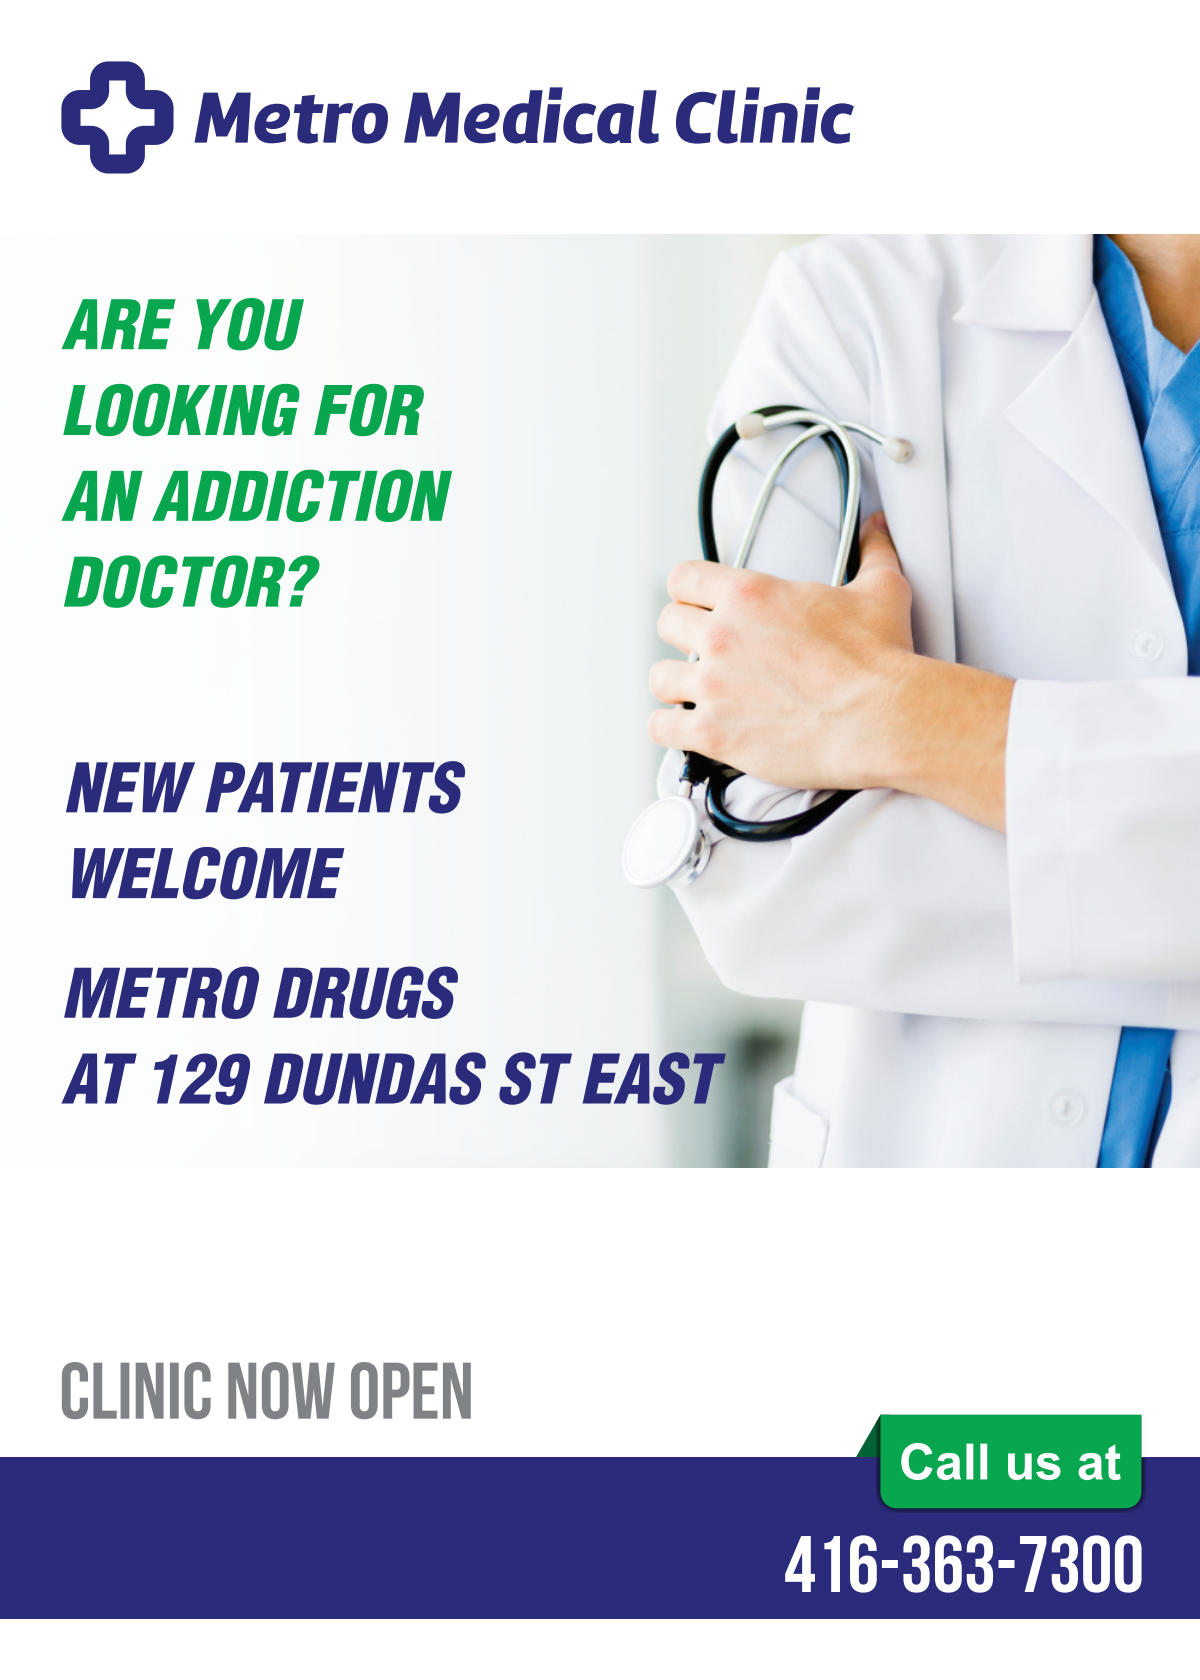 Looking for an Addiction Doctor